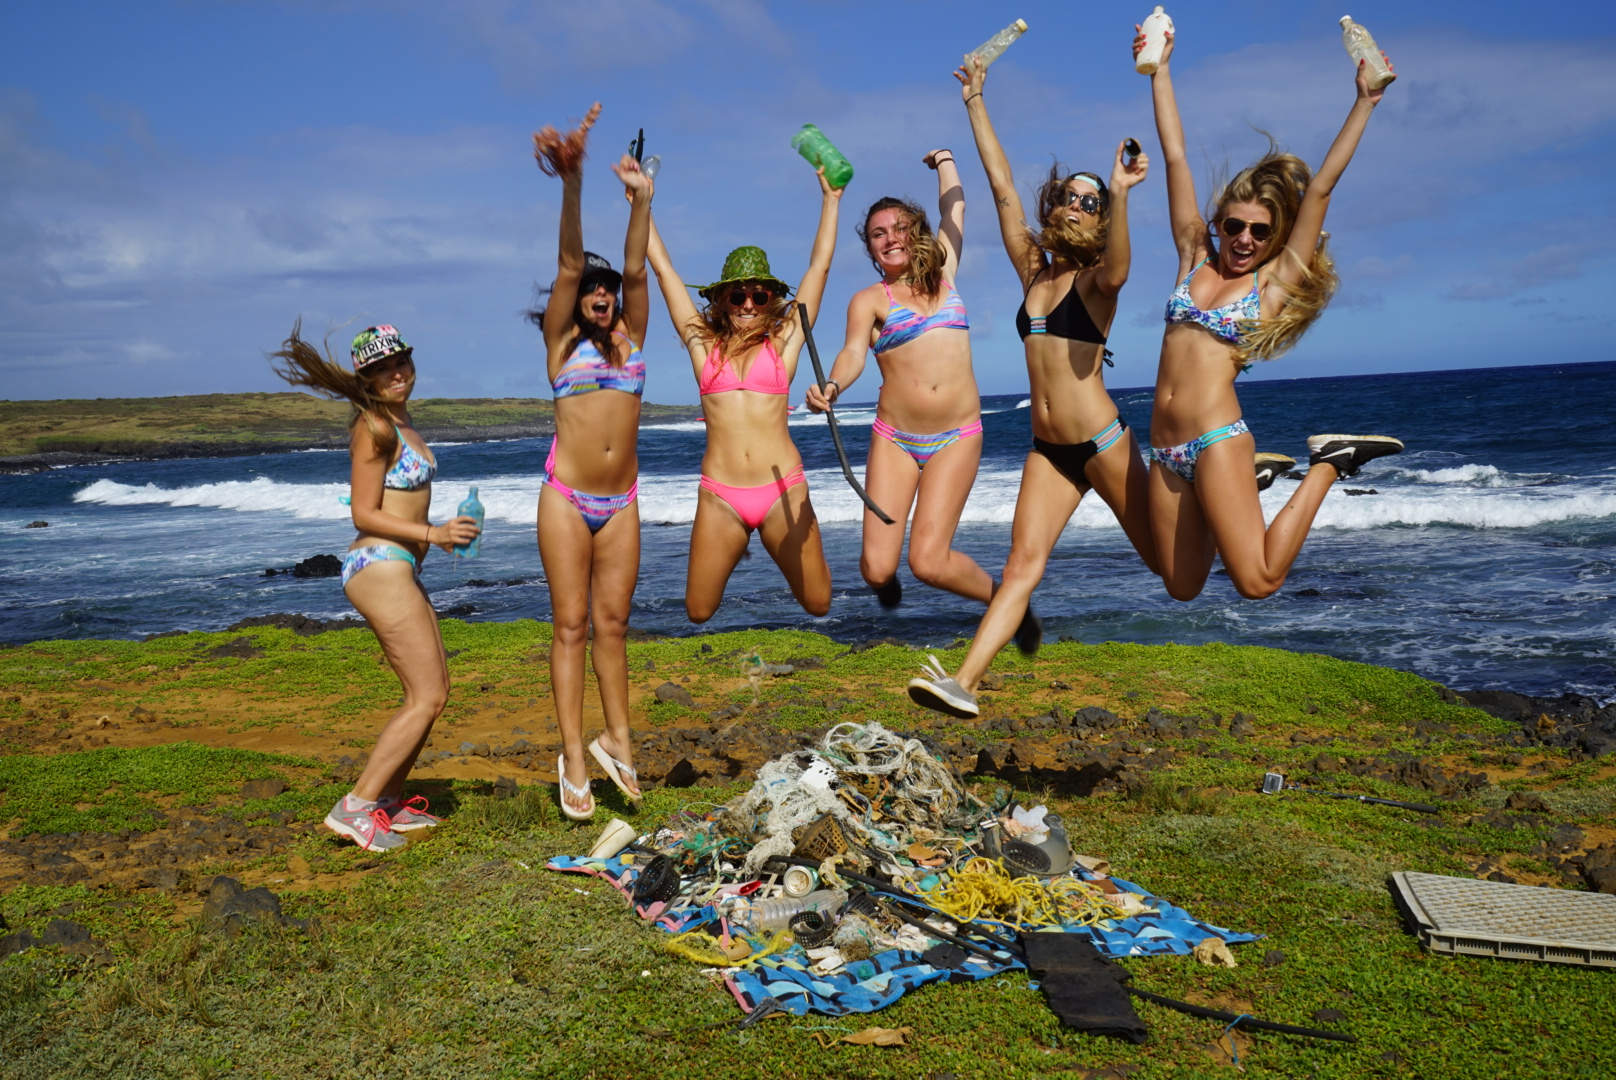 """Alison Teal (third from left), some YouTubers, and a pile of plastic pollution hauled off the reef in Hawaii Oct. 14. """"We combed the beach for hours collecting micro and macro plastics with labels from all over the world. Happy to have their help cleaning up the planet and posting videos on their YouTube channels, and excited to see what further research Kontiki2 will bring the world on the ocean, micro plastics and is effect on ocean life.South Point is a 'catch all' for trash from all over he world. The beach has layers of micro plastic. The YouTubers are eager to make a difference in the world."""""""